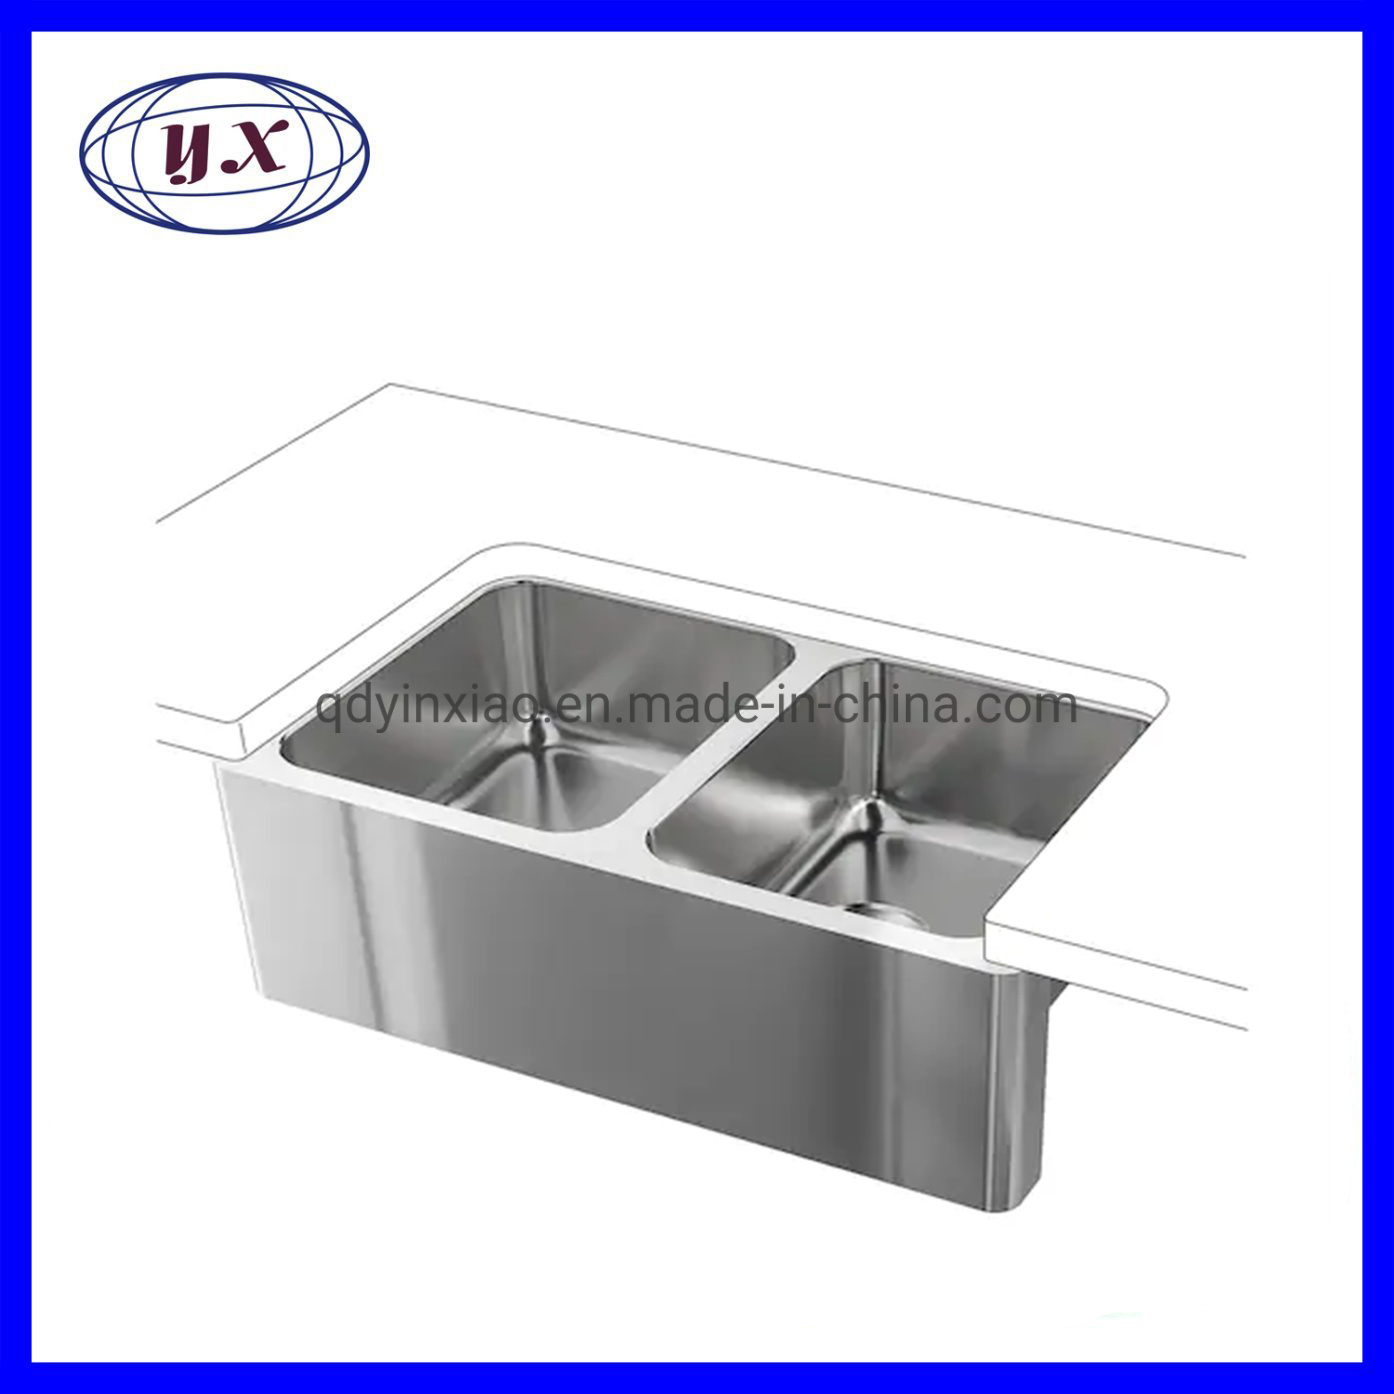 China Handmade Stainless Steel Kitchen Sink Glass Sink China Stamping Parts Machine Parts